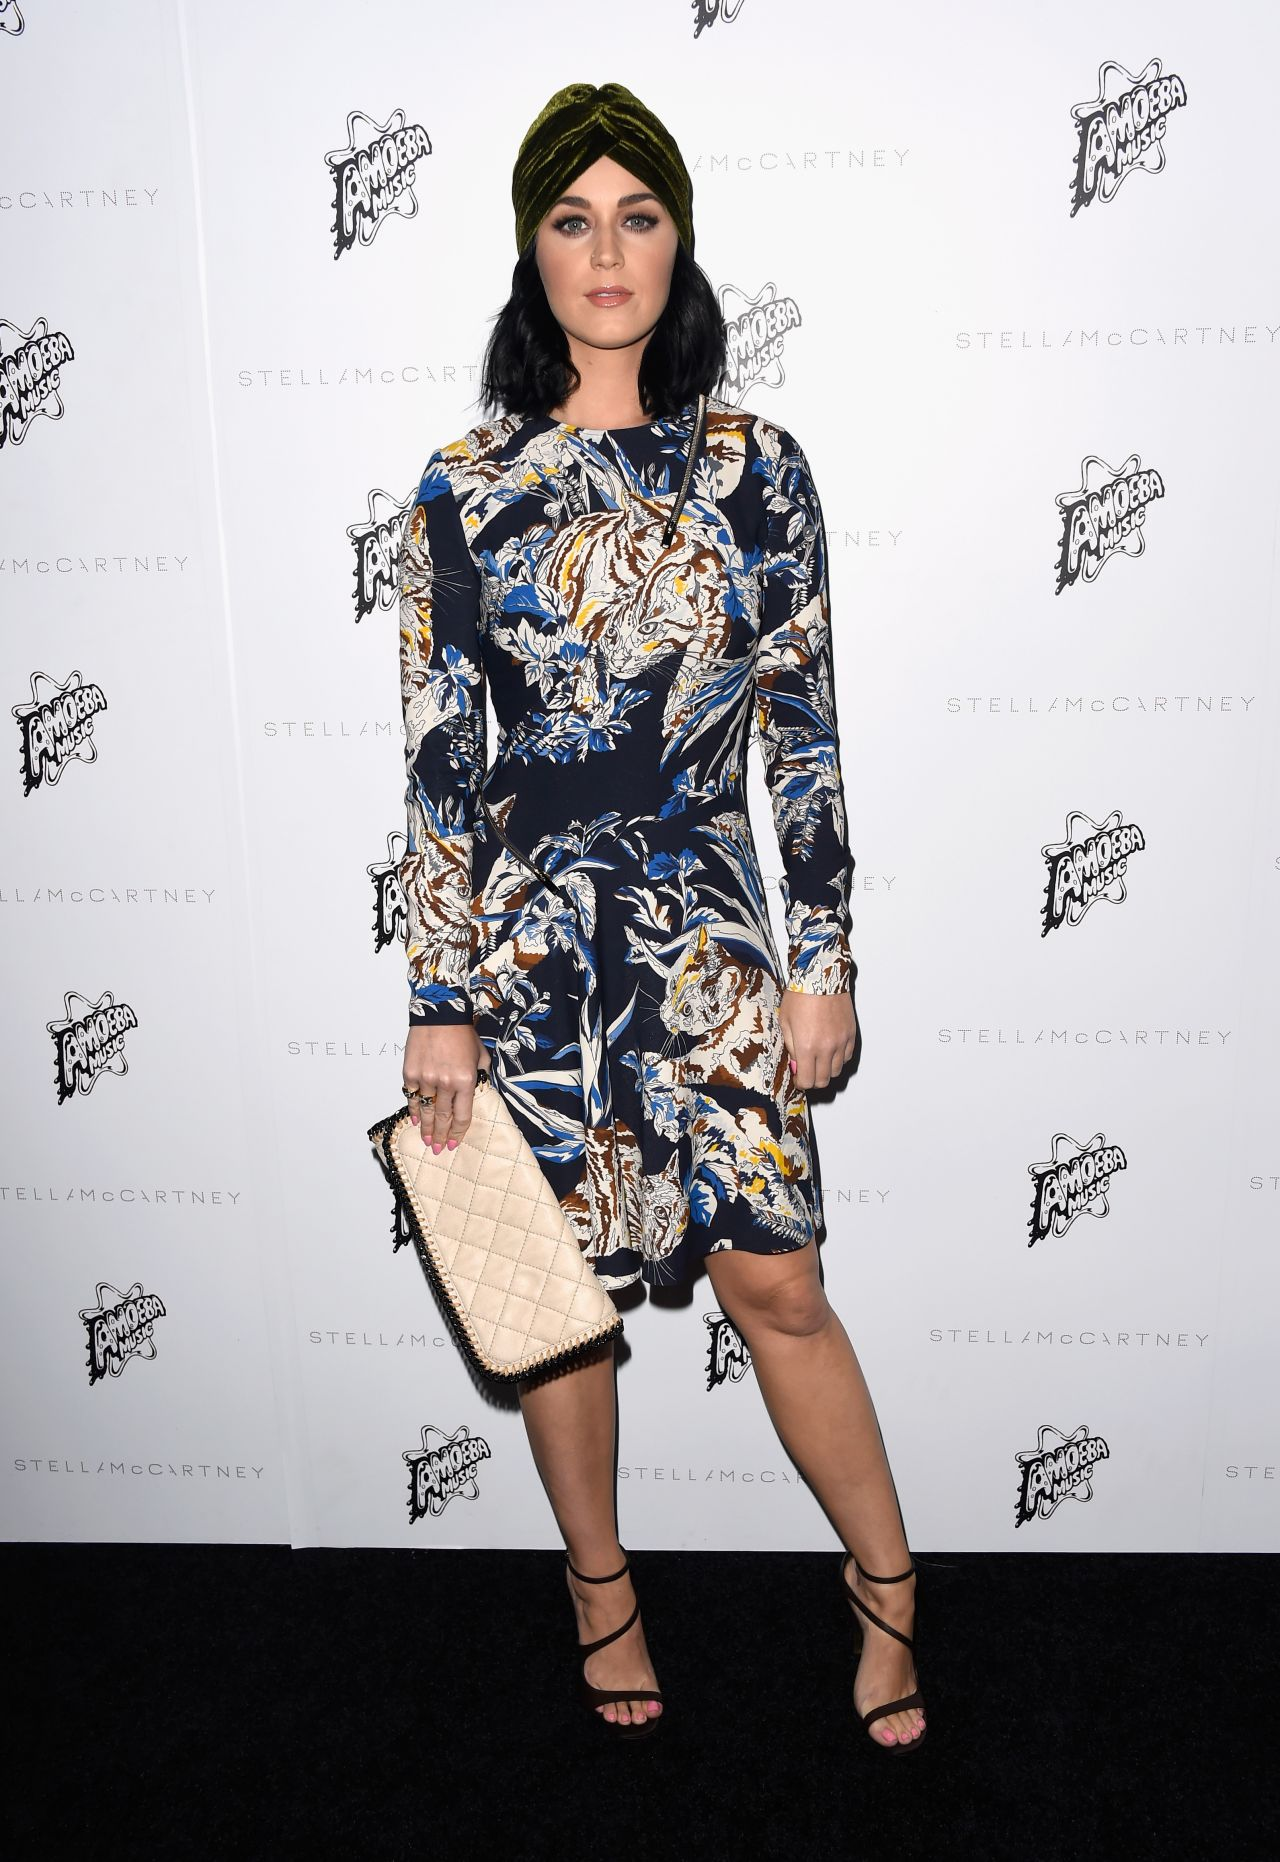 katy-perry-stella-mccartney-autumn-2016-presentation-in-los-angeles-ca-2